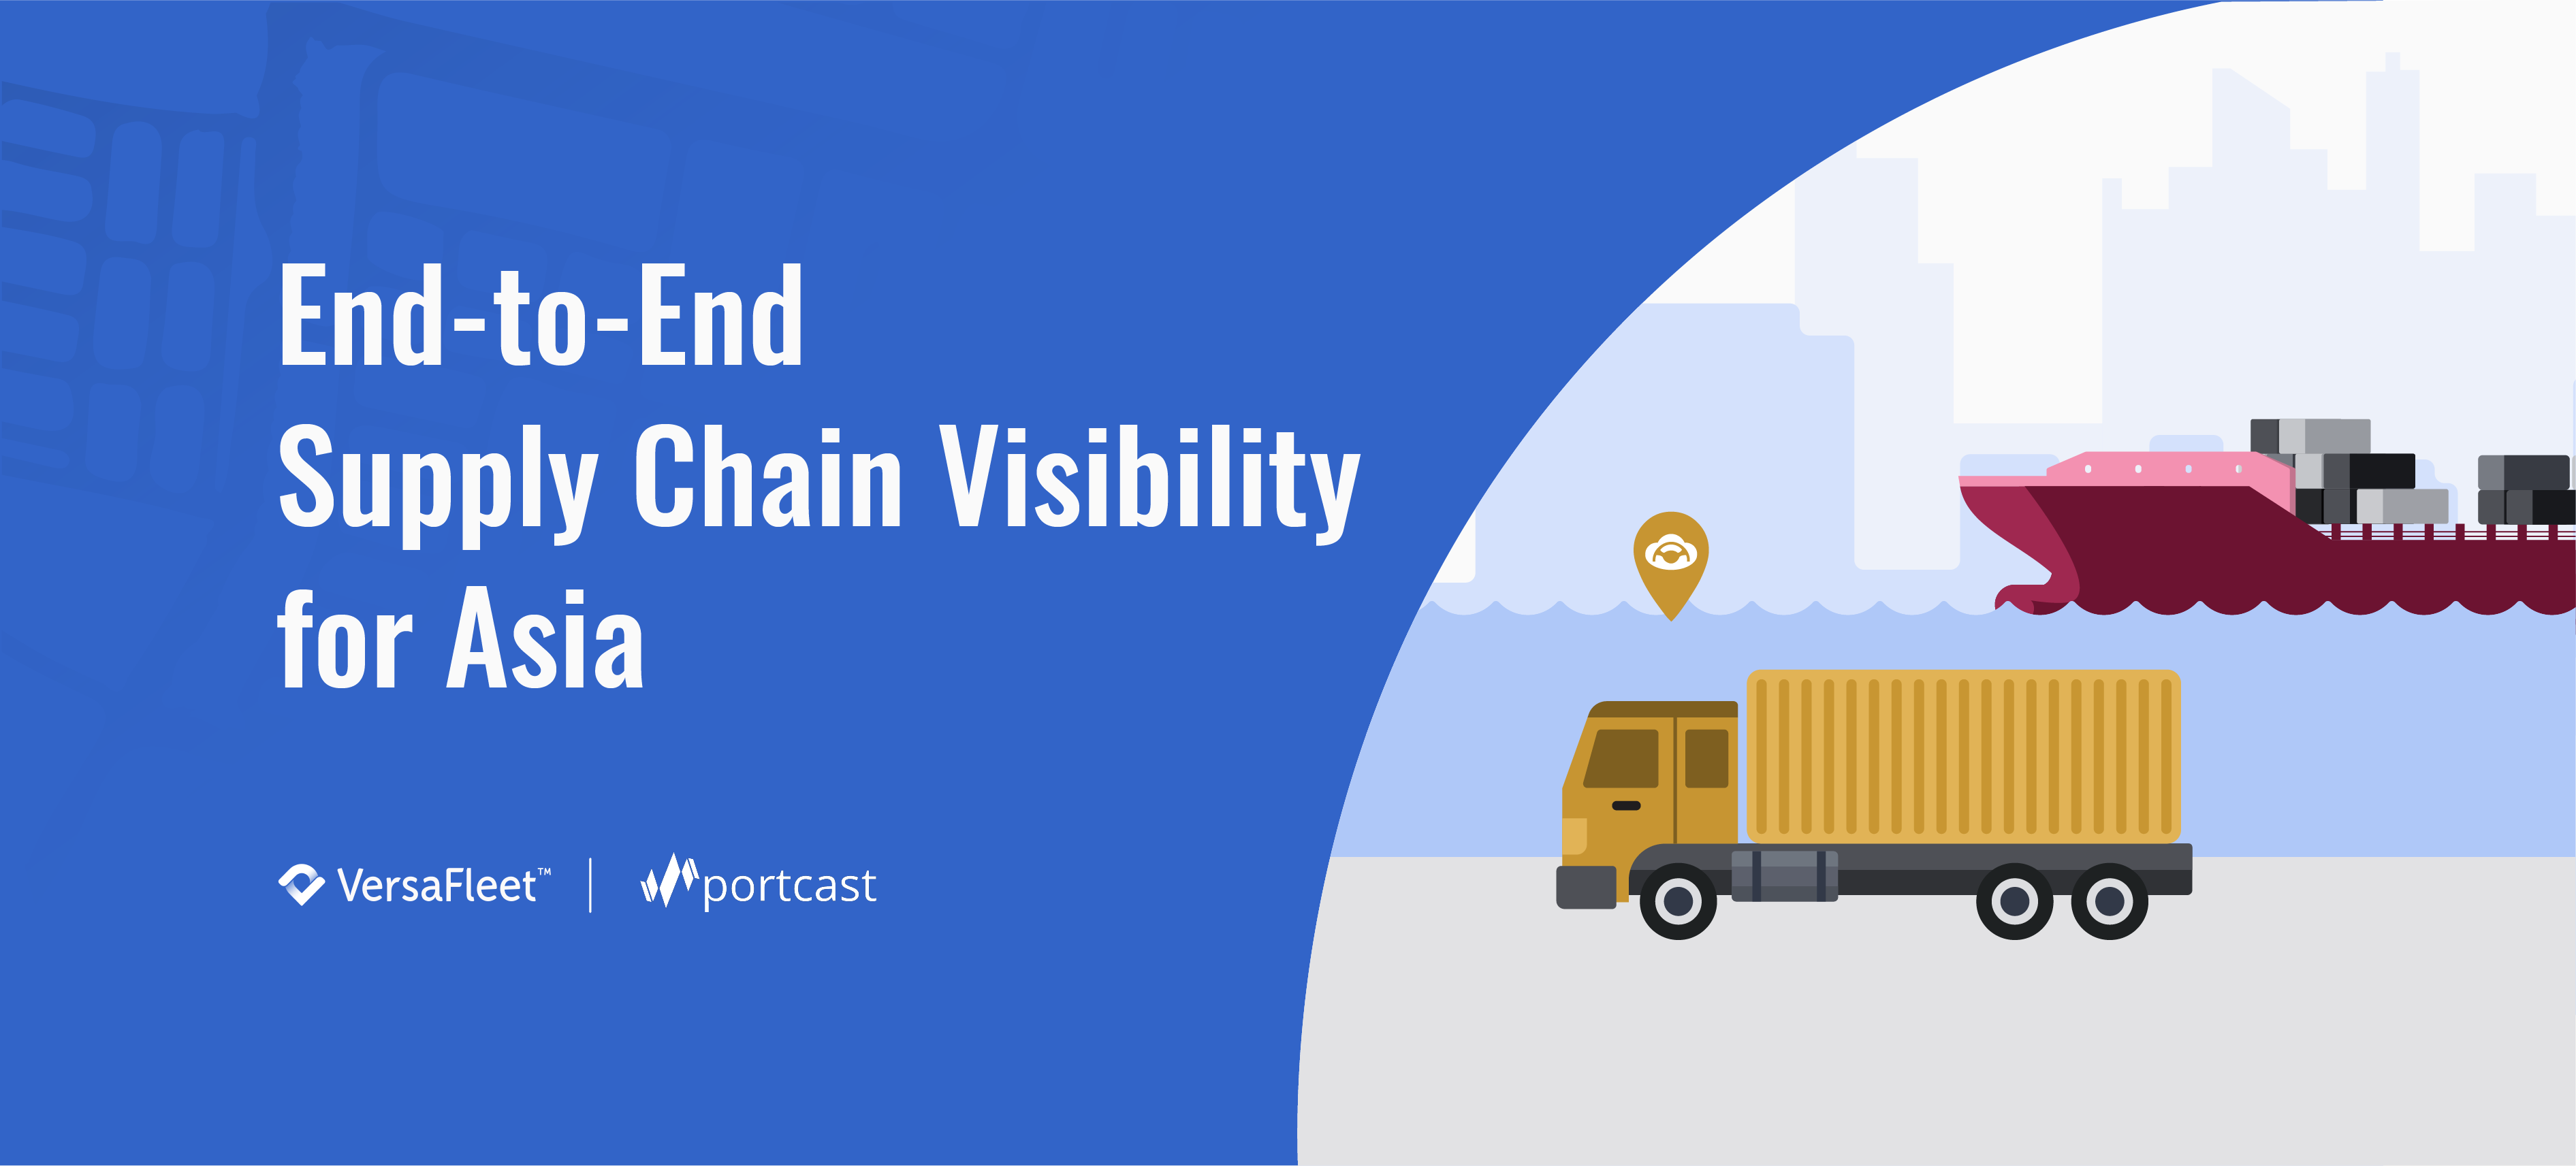 Achieving End-to-End Supply Chain Visibility